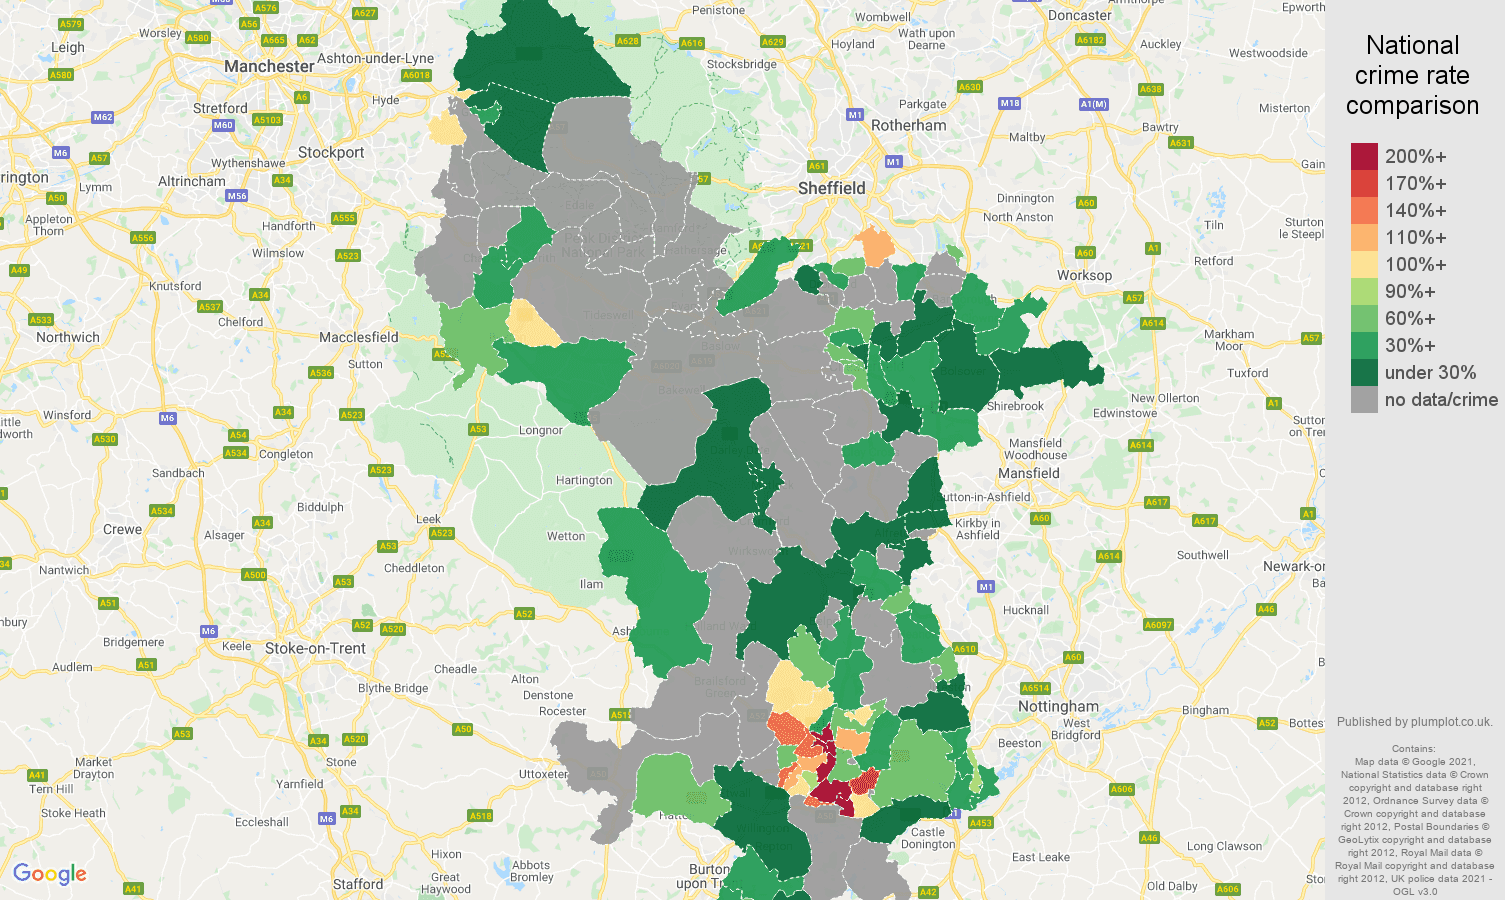 Derbyshire robbery crime rate comparison map